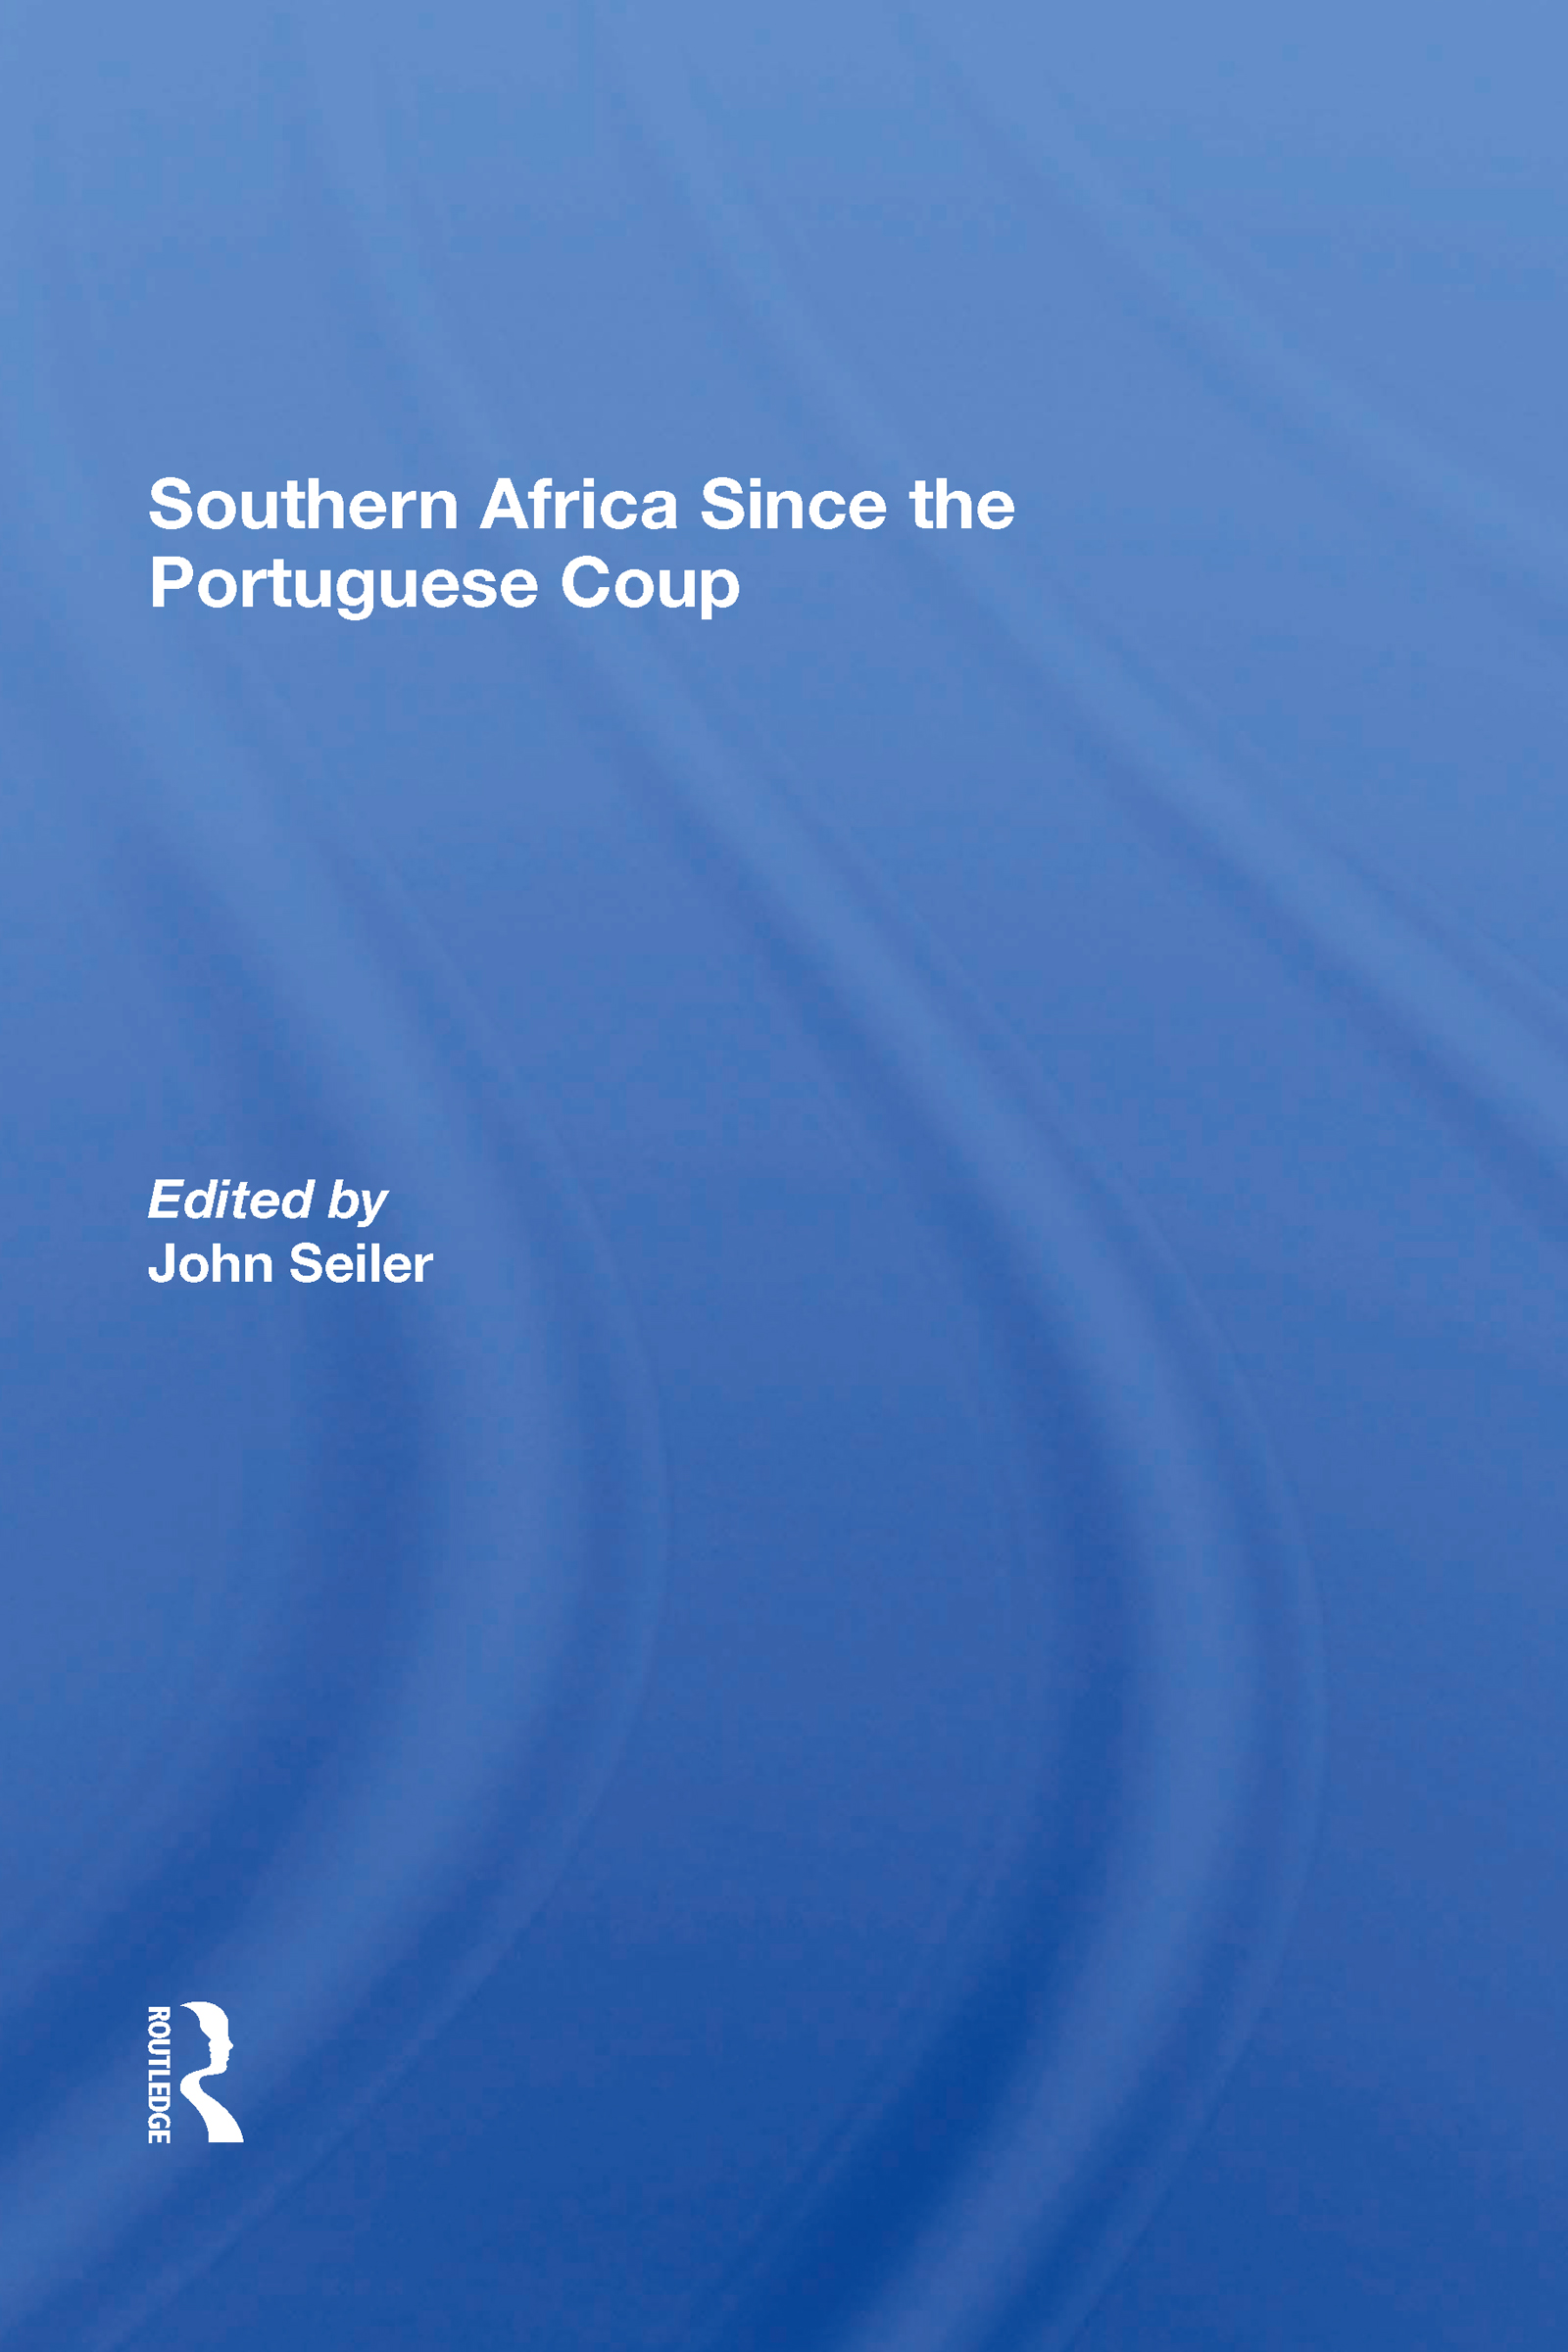 Southern Africa Since The Portuguese Coup